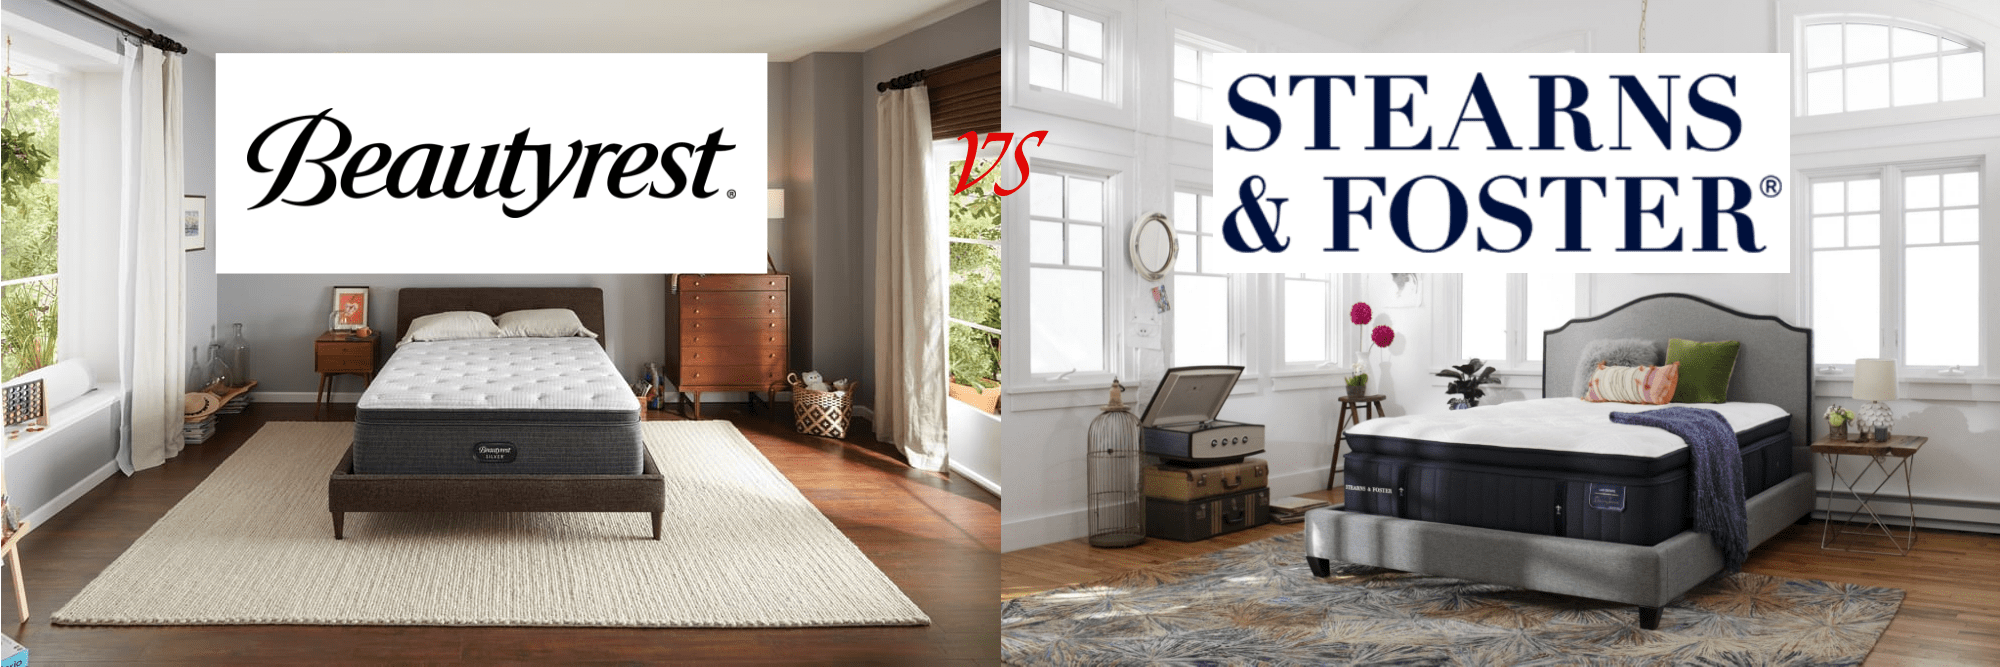 Beautyrest vs Stearns and Foster Mattresses